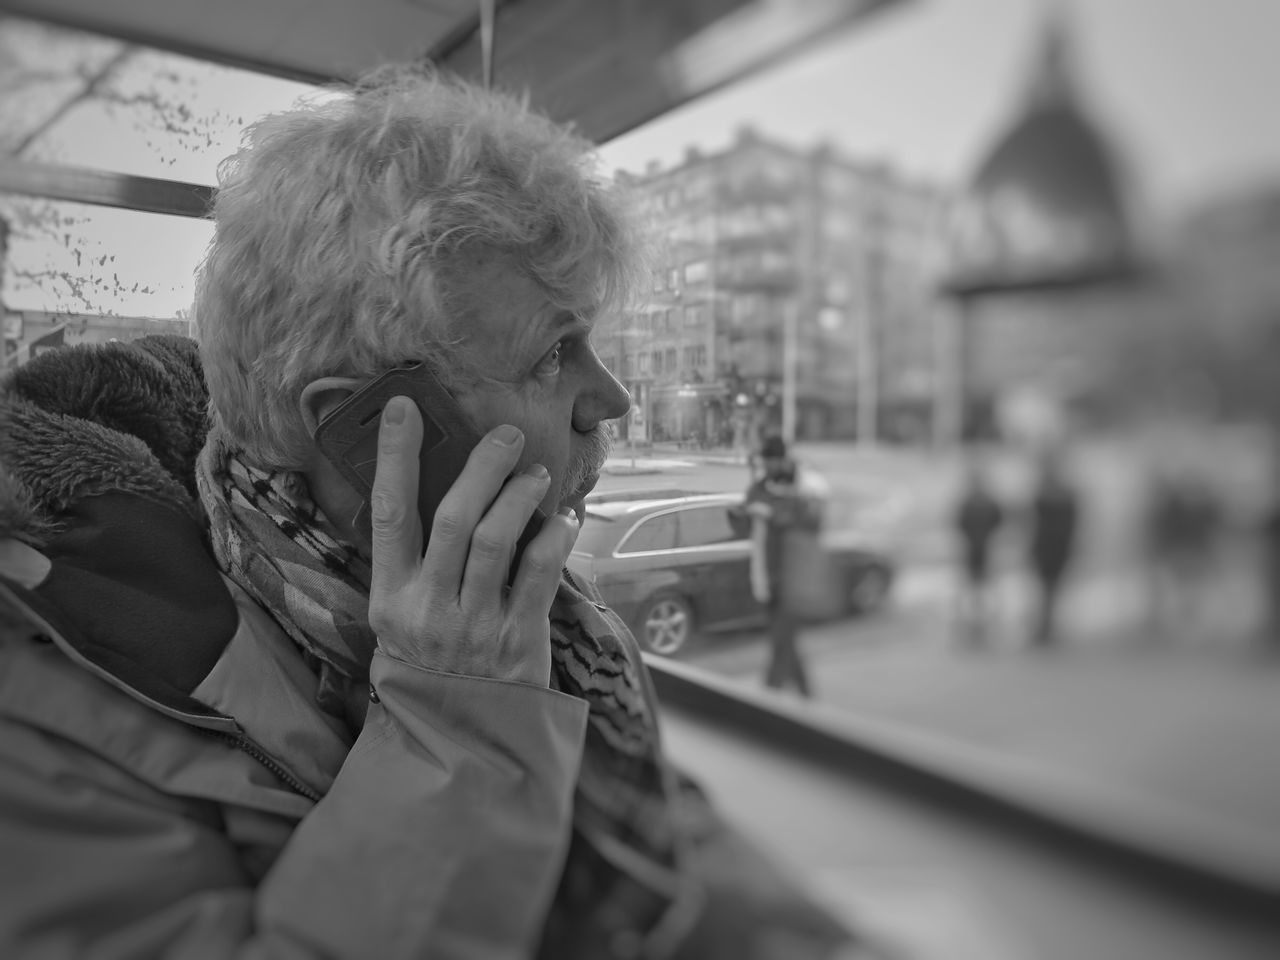 real people, public transportation, one person, transportation, using phone, communication, train - vehicle, mobile phone, mode of transport, senior women, lifestyles, wireless technology, senior adult, day, technology, indoors, human hand, close-up